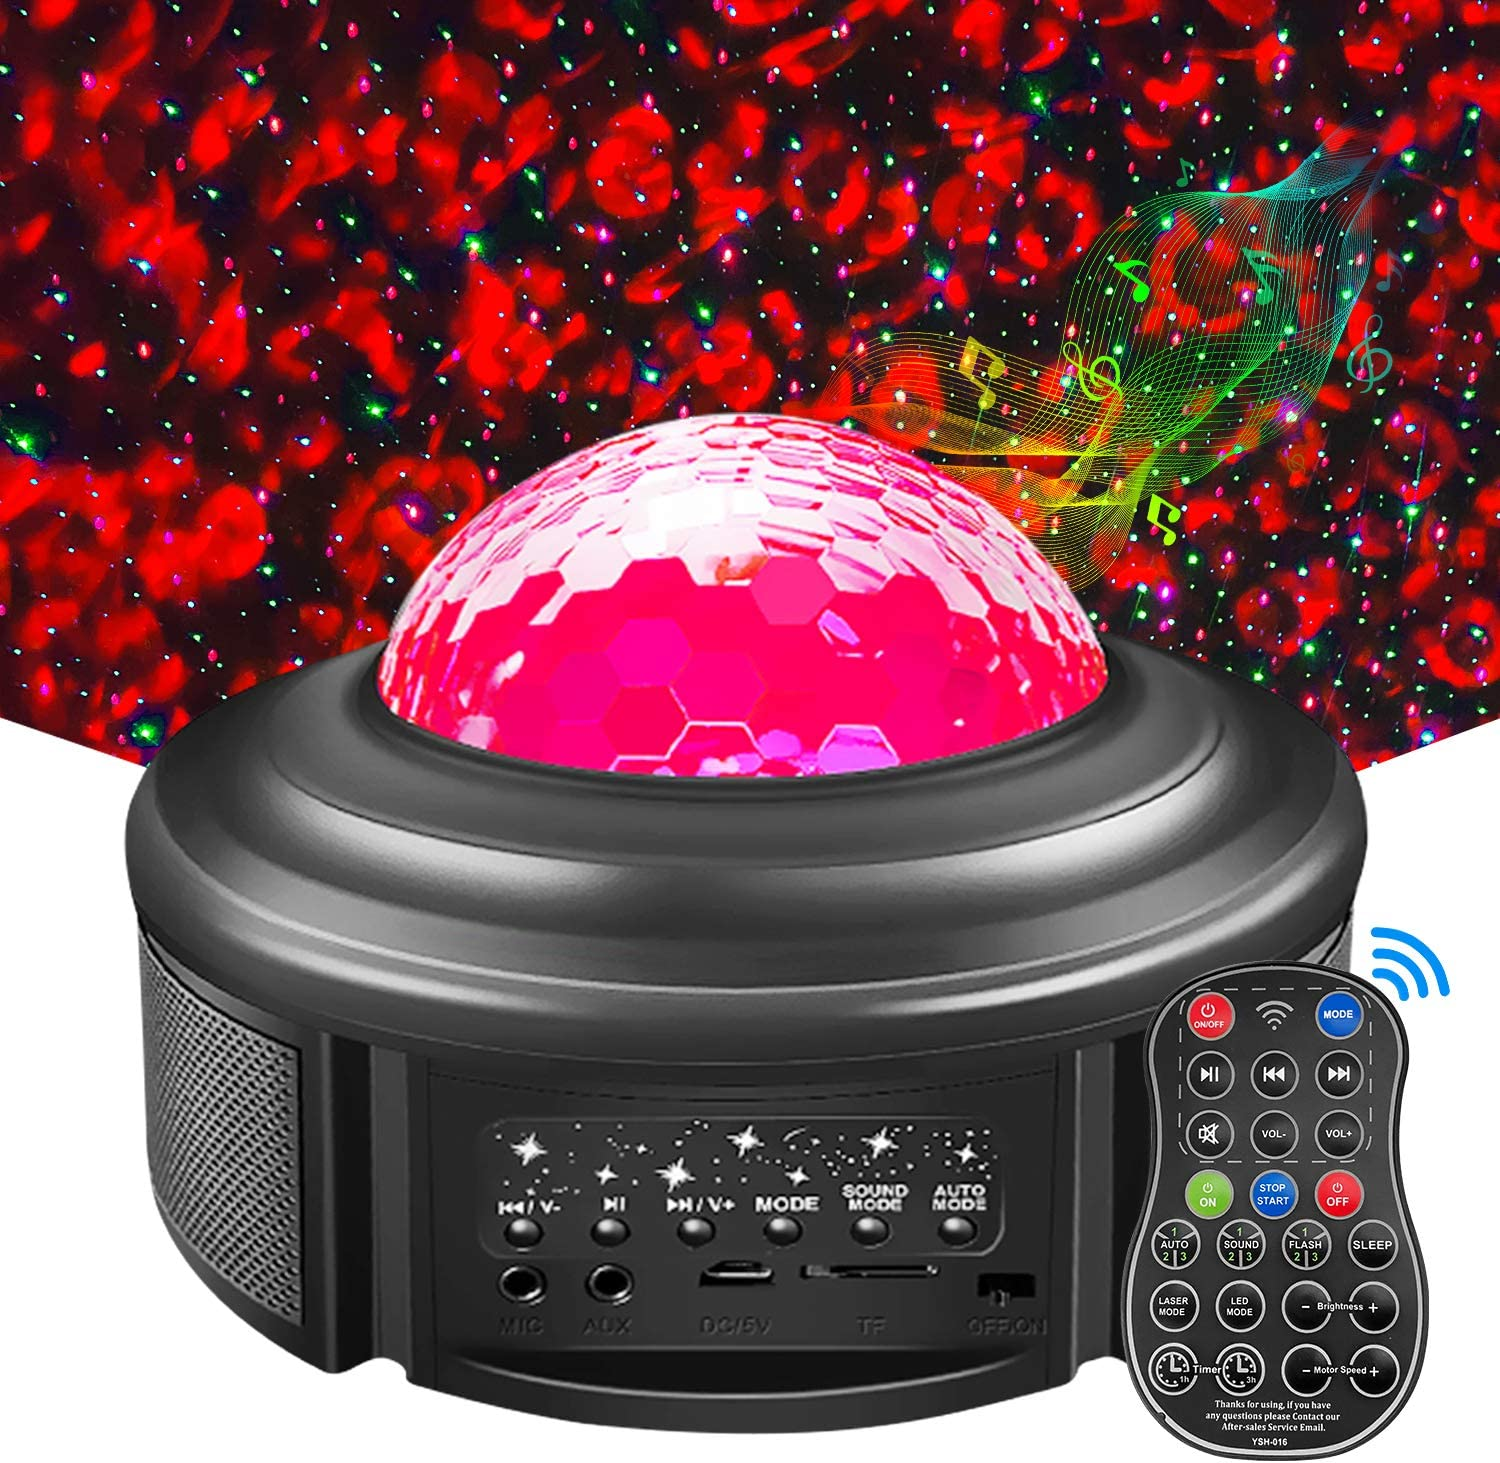 Galaxy Night Light Projector, 2 in 1 Ocean Wave/Starry [43 Modes] LED Nebula Cloud Lights Built-in Music Speaker/Remote Control/Timer Star Ambiance Lamp for Baby Kids Bedroom/Game Rooms/Home Theater